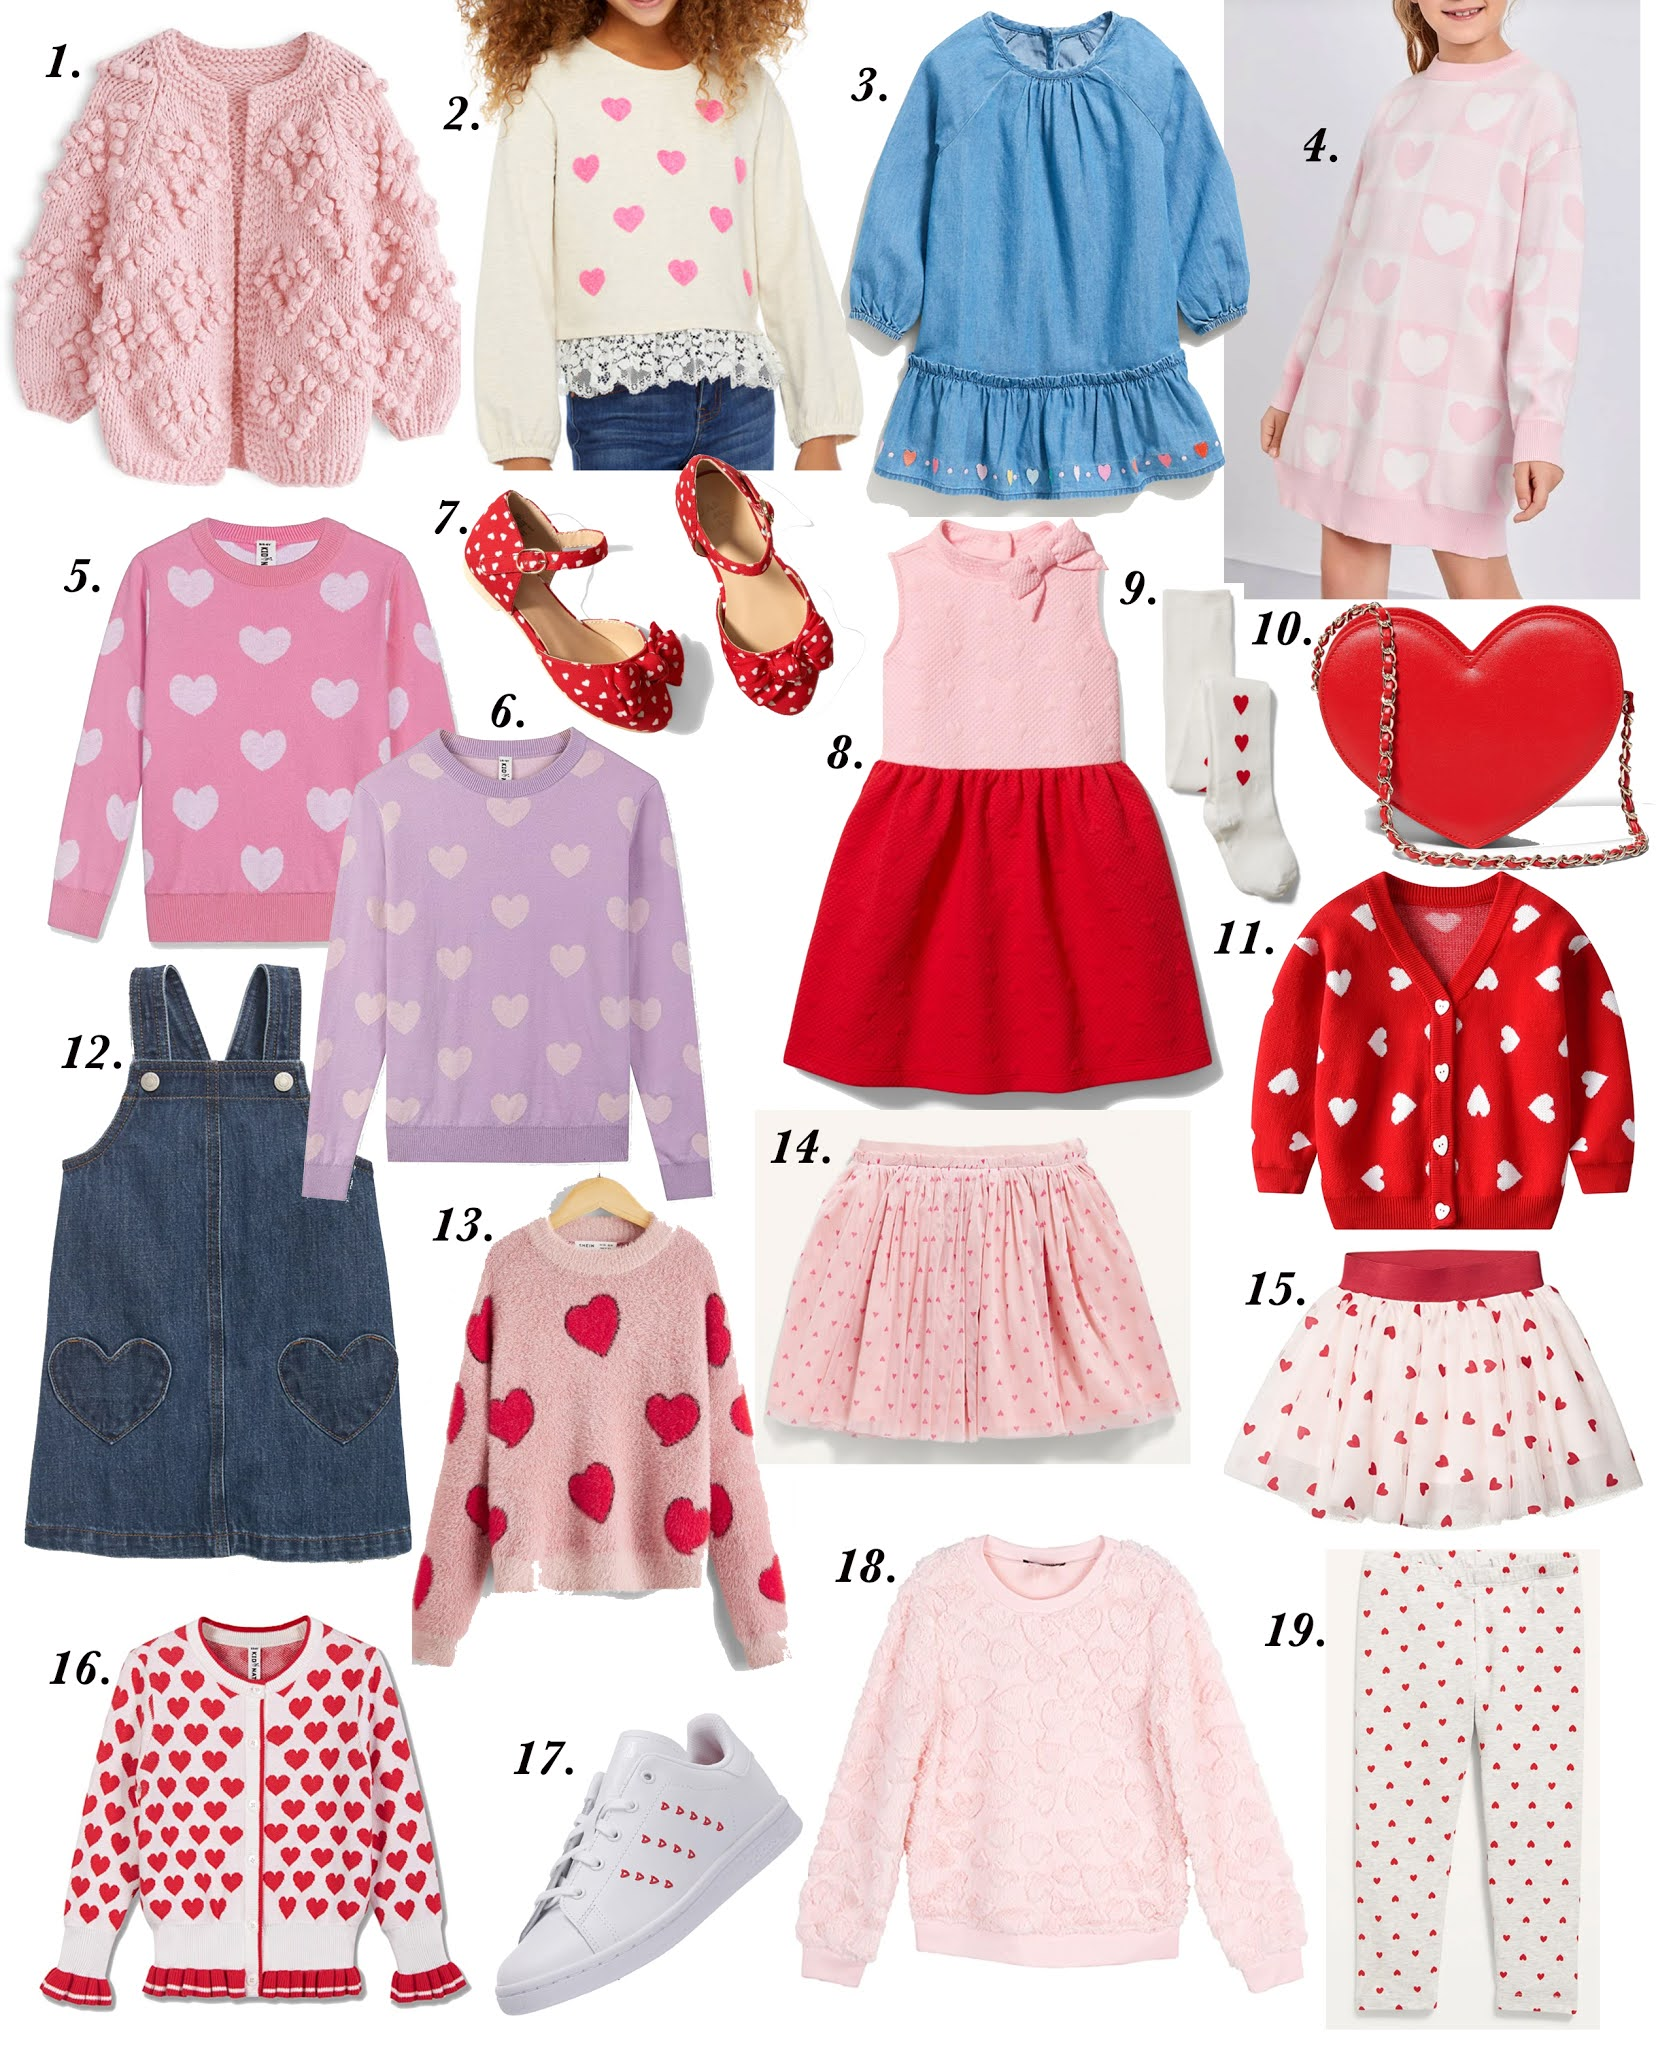 Valentines Day Outfit Inspo for Kids - Valentine Outfit Inspiration for Adults and Kids: Something Delightful Blog #ValentinesDay #HeartSweaters #ValentinesDayInspo #ValentinesDaySweaters #Pink #Affordable Fashion